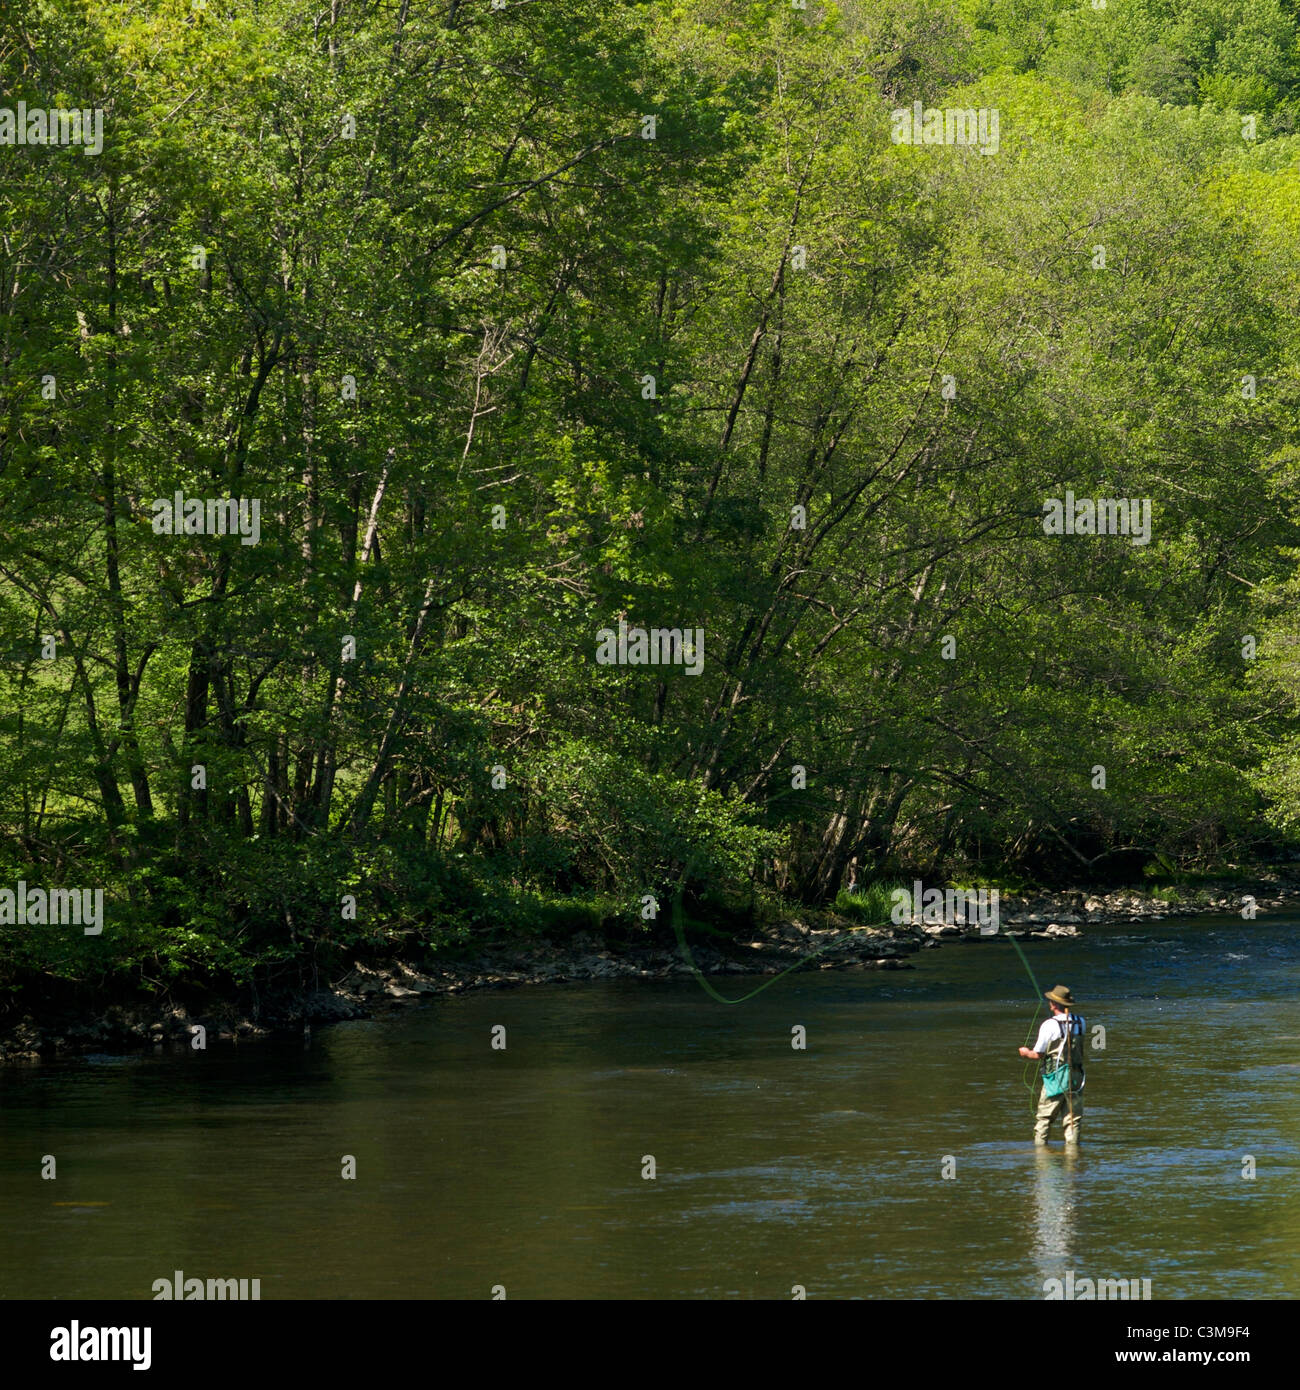 Man angling in a river in Auvergne. France. - Stock Image